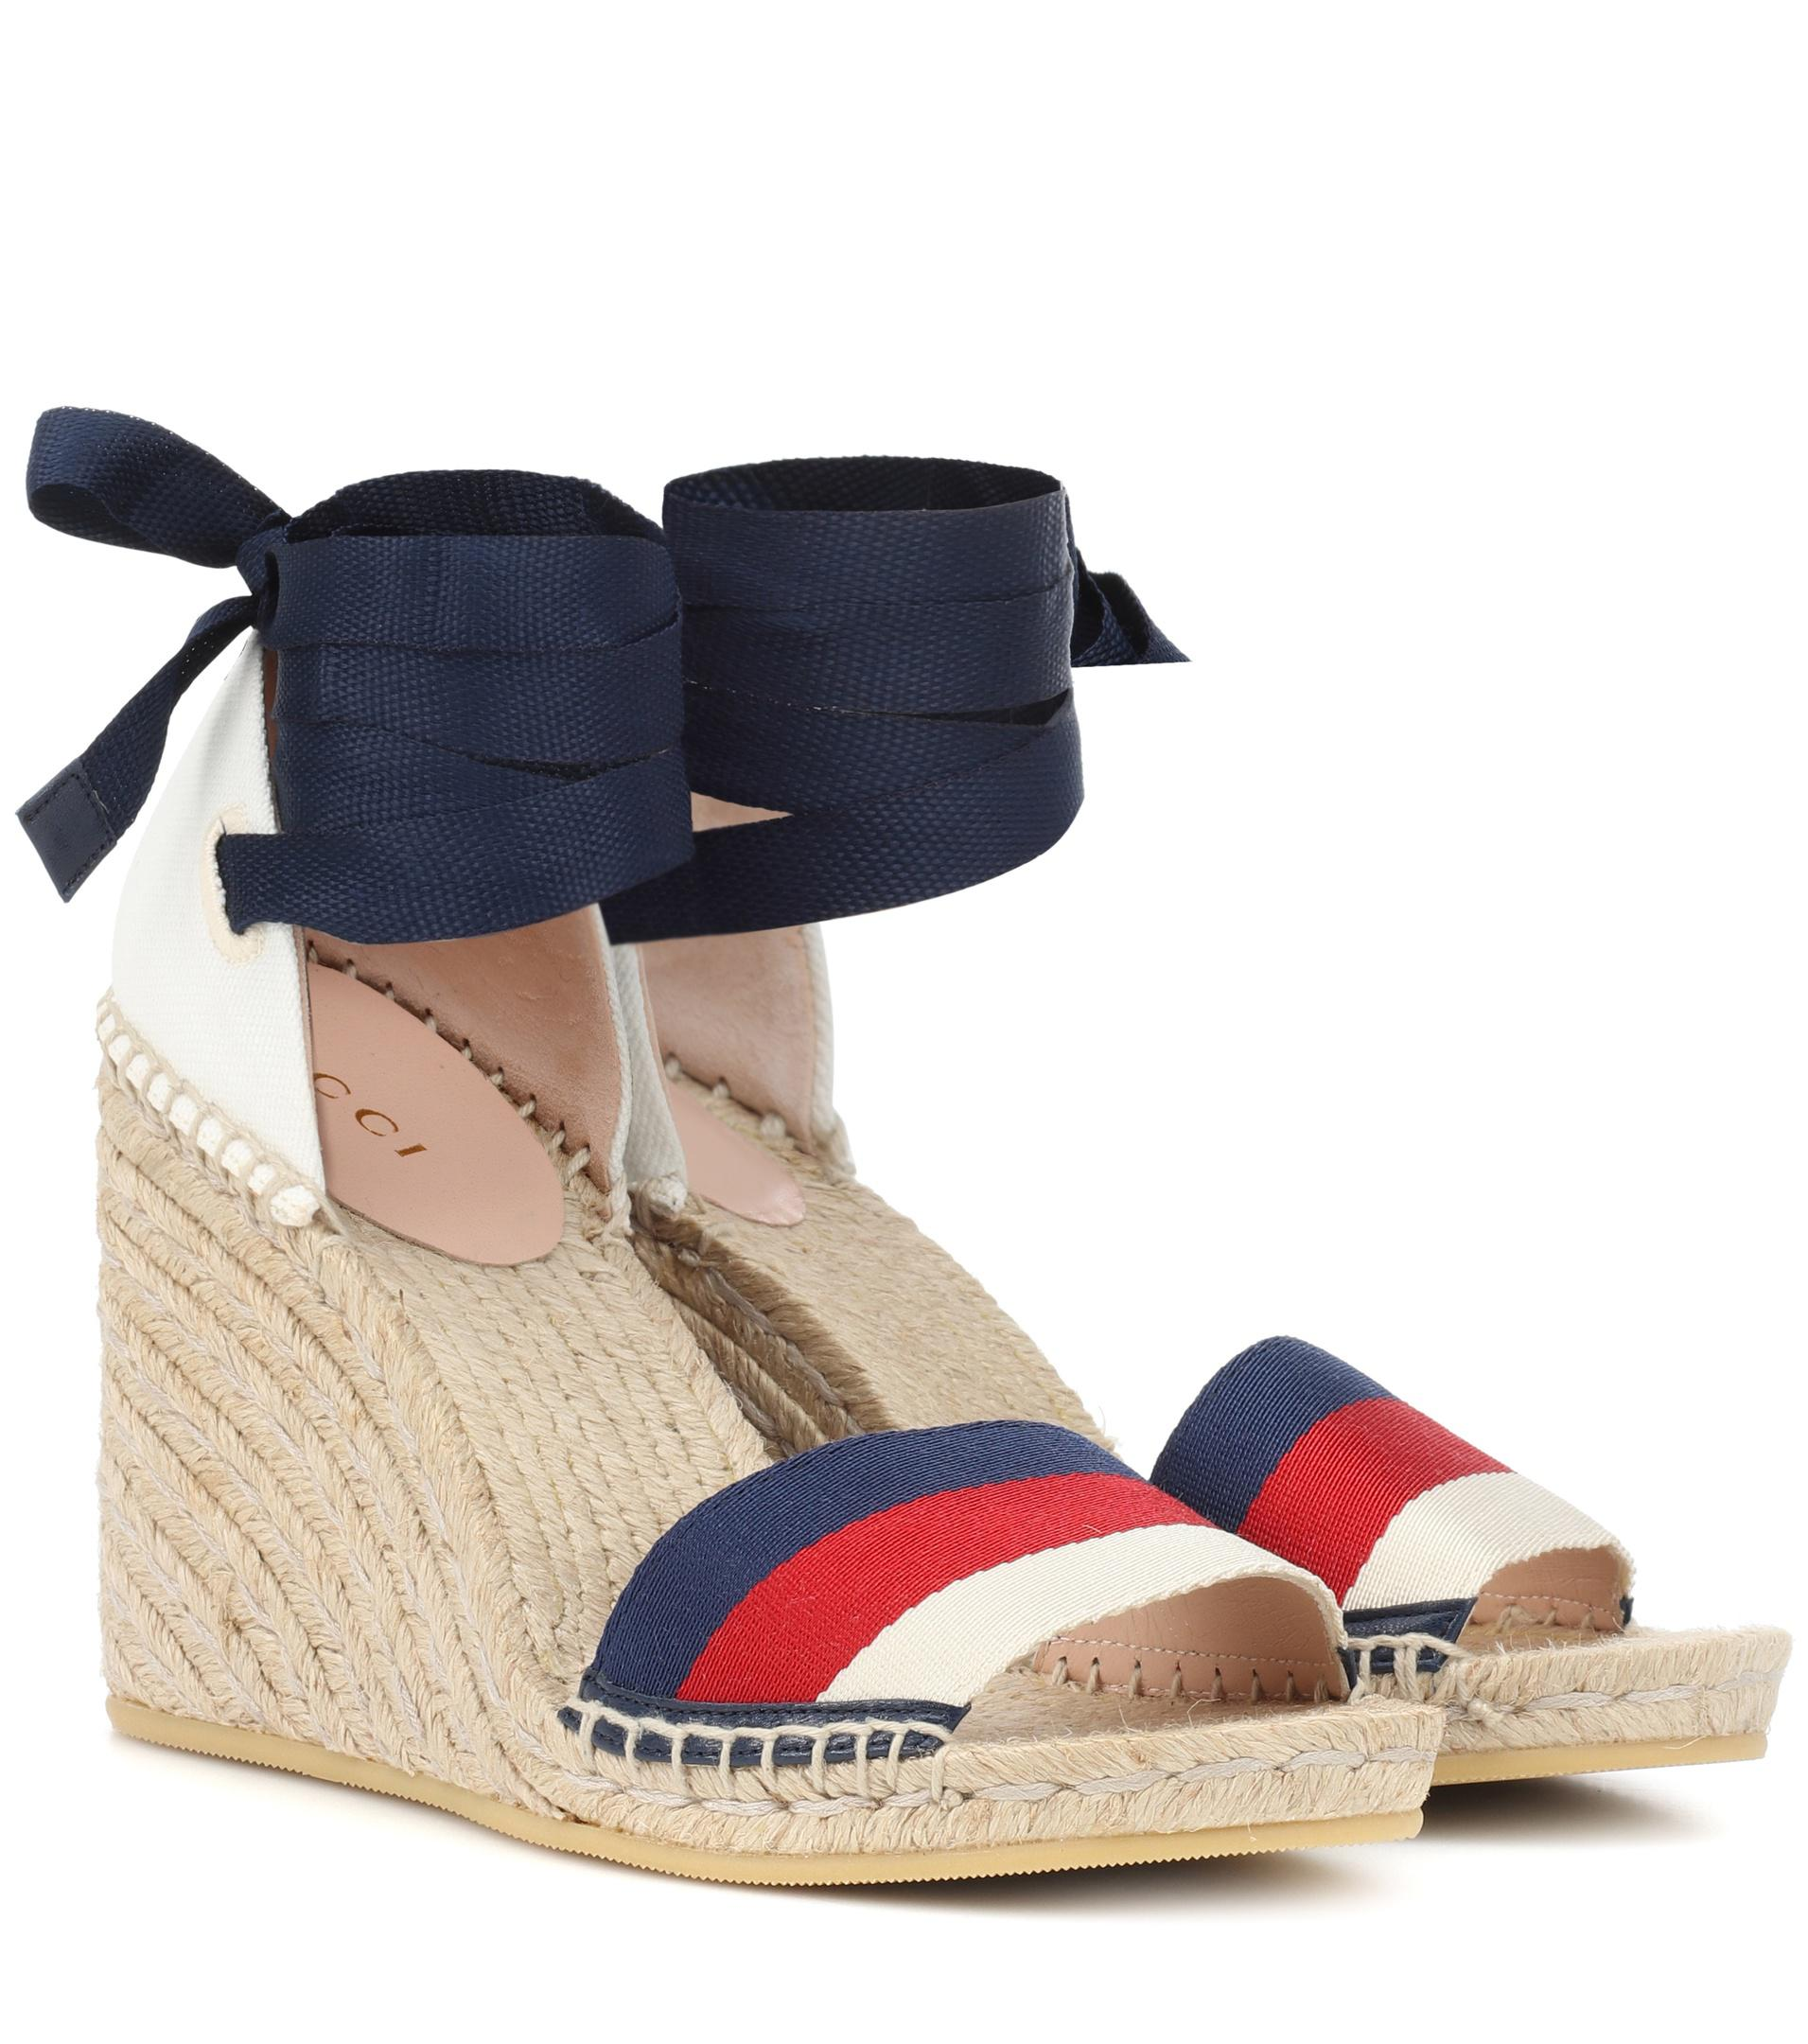 4741979b5d Gucci Sylvie Web Espadrille Wedges in Blue - Lyst